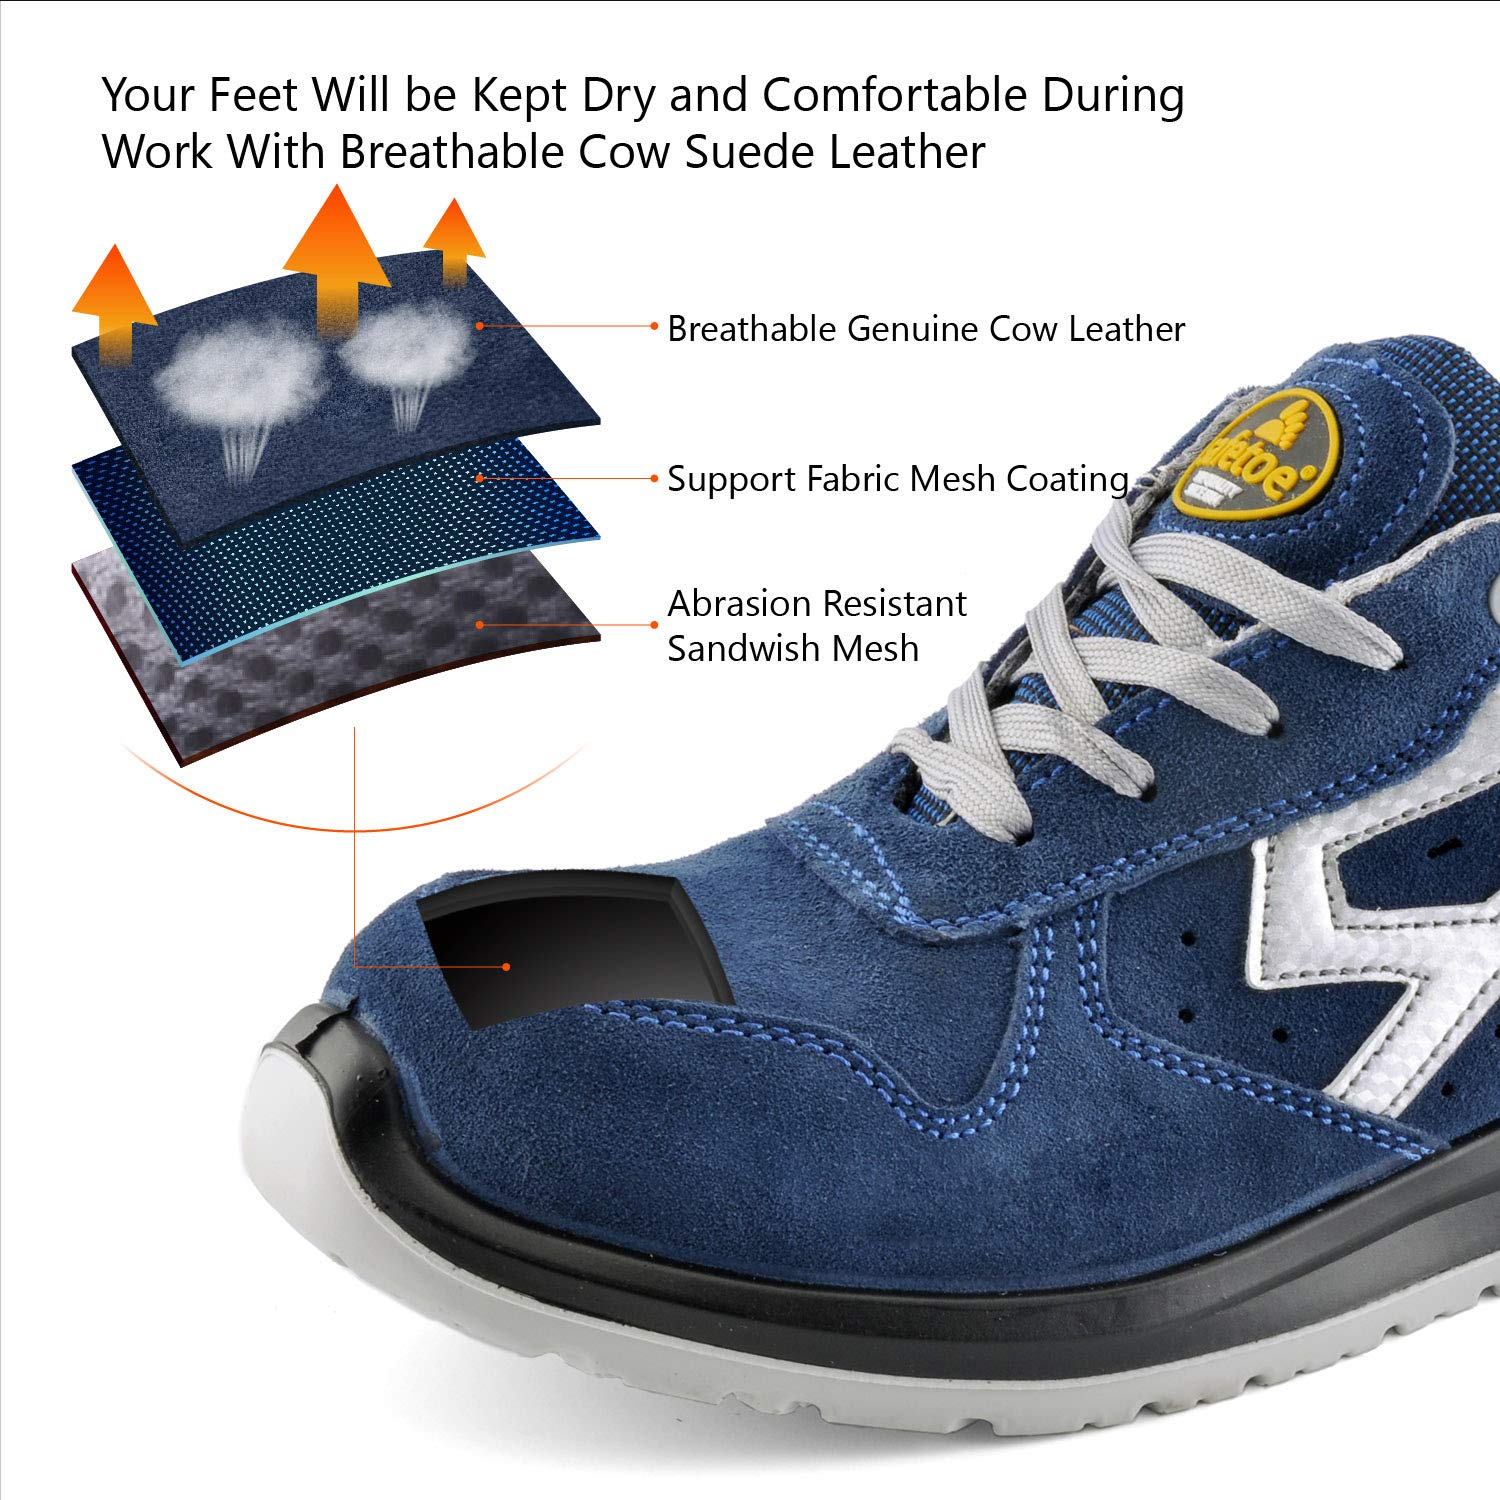 6bbb30c4b83e SAFETOE Lightweight Safety Trainers - 7328 Breathable Leather Safety Shoes  with Composite Steel Toe Cap